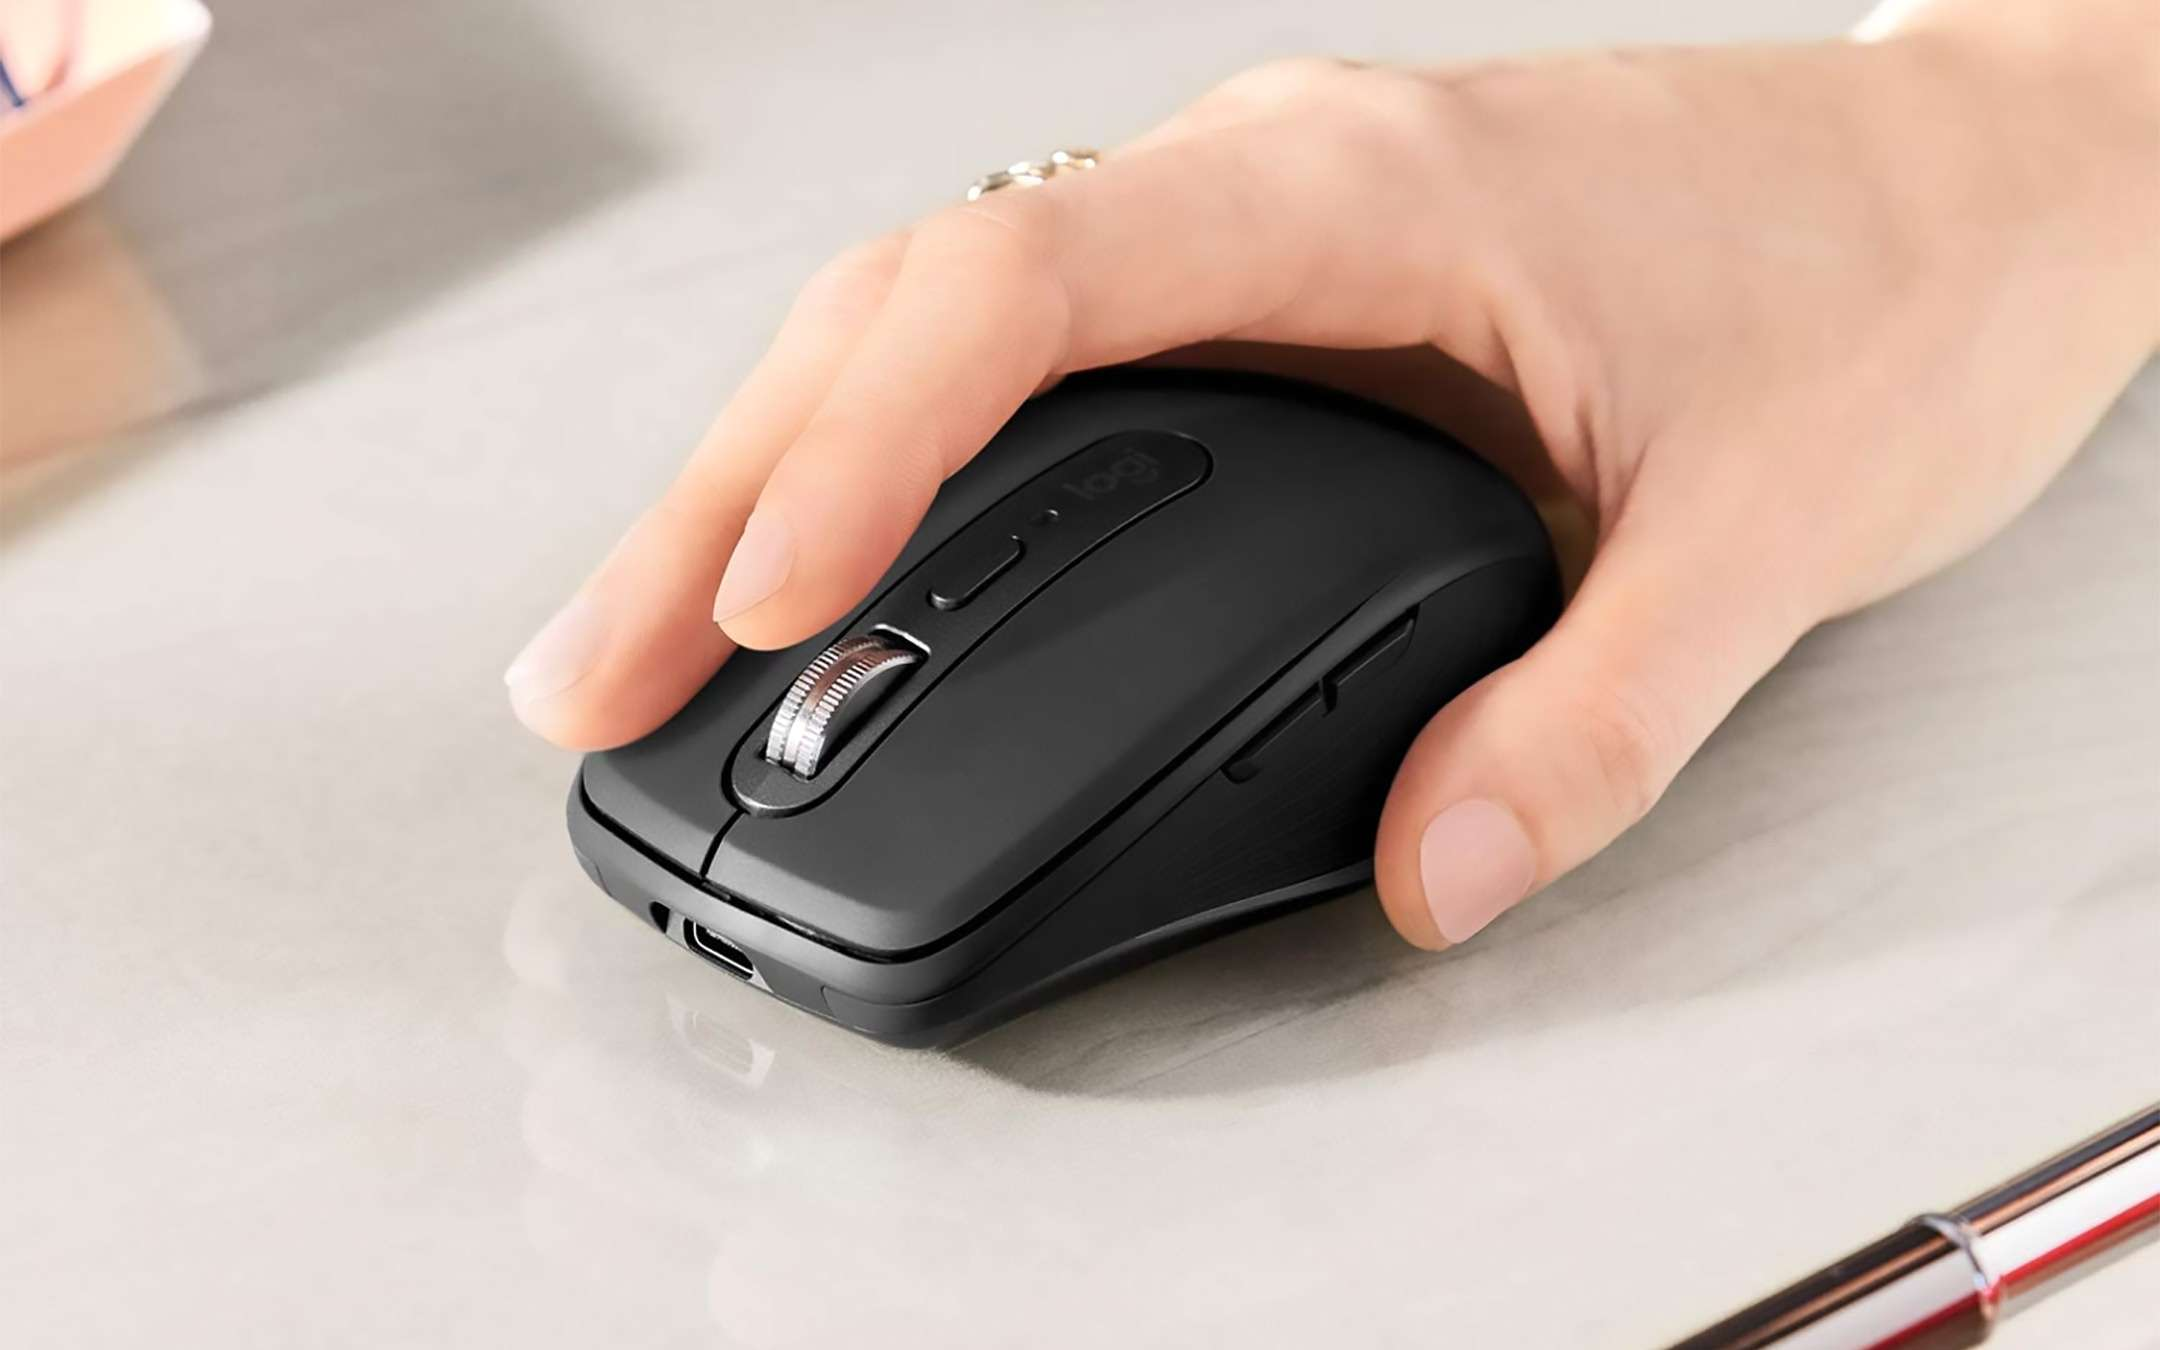 Logitech MX Anywhere 3, 22% discount on Amazon